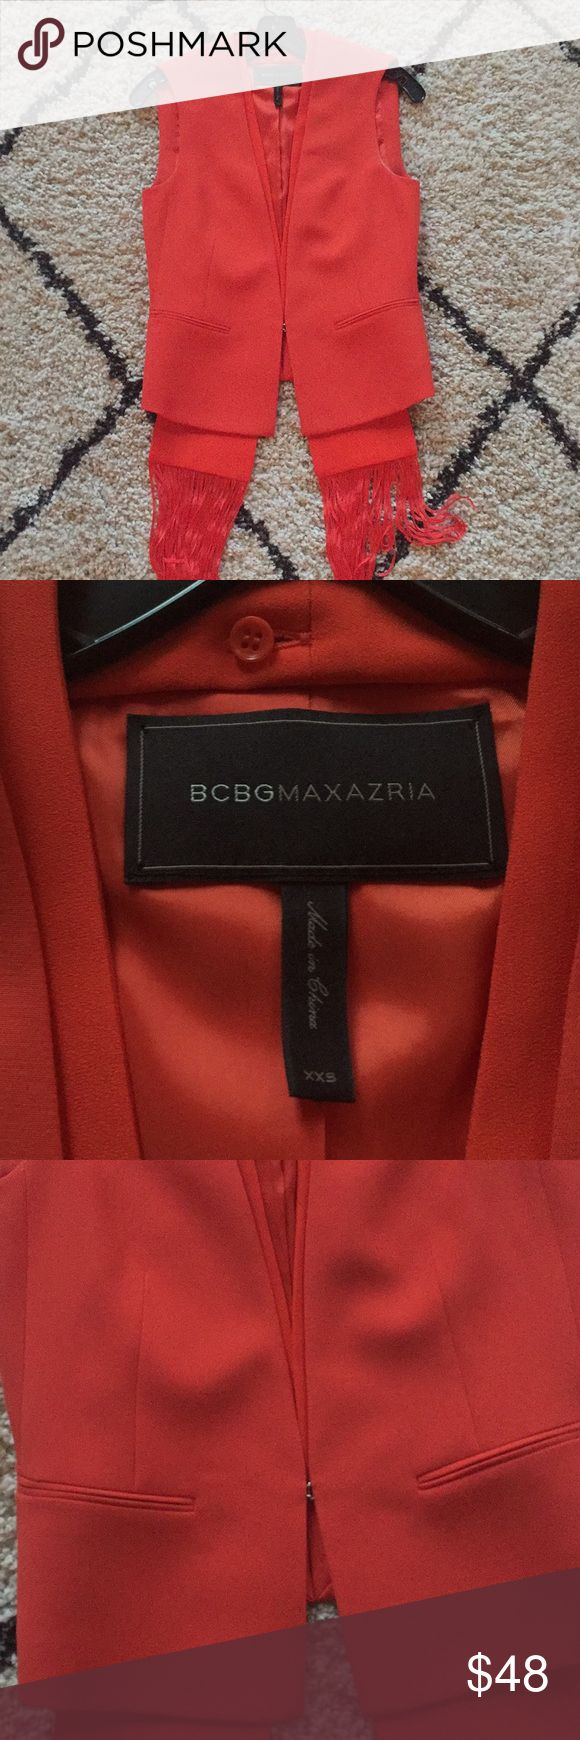 BCBG Maxazria Red Orange Vest w Removable Scarf BCBG red orange vest with removable scarf. Size XXS. Scarf has fringe and is removable. BCBGMaxAzria Jackets & Coats Vests